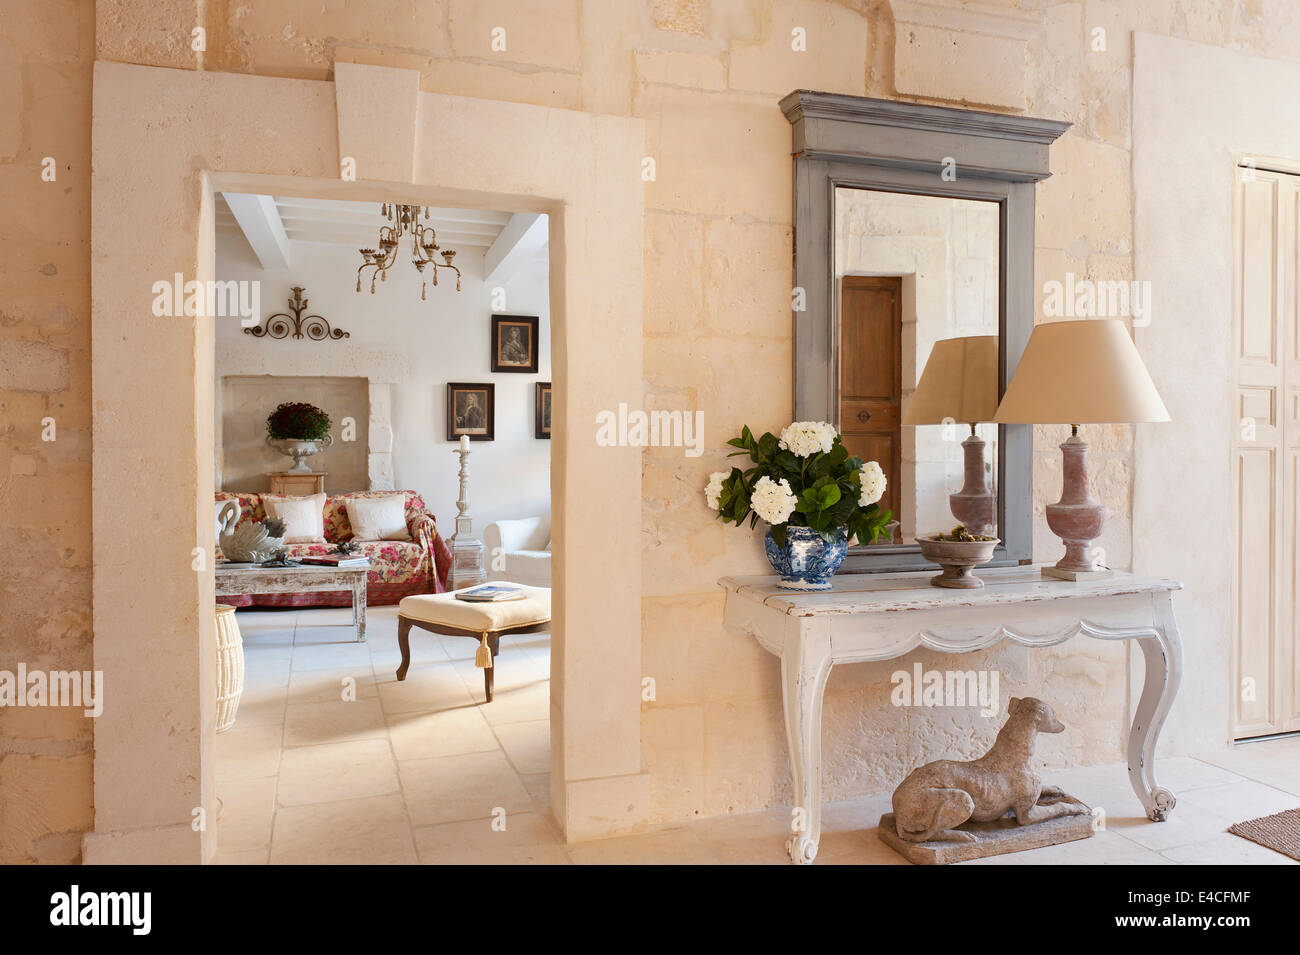 Entrance Hall With Antique Two Legged Wooden Console Table And View